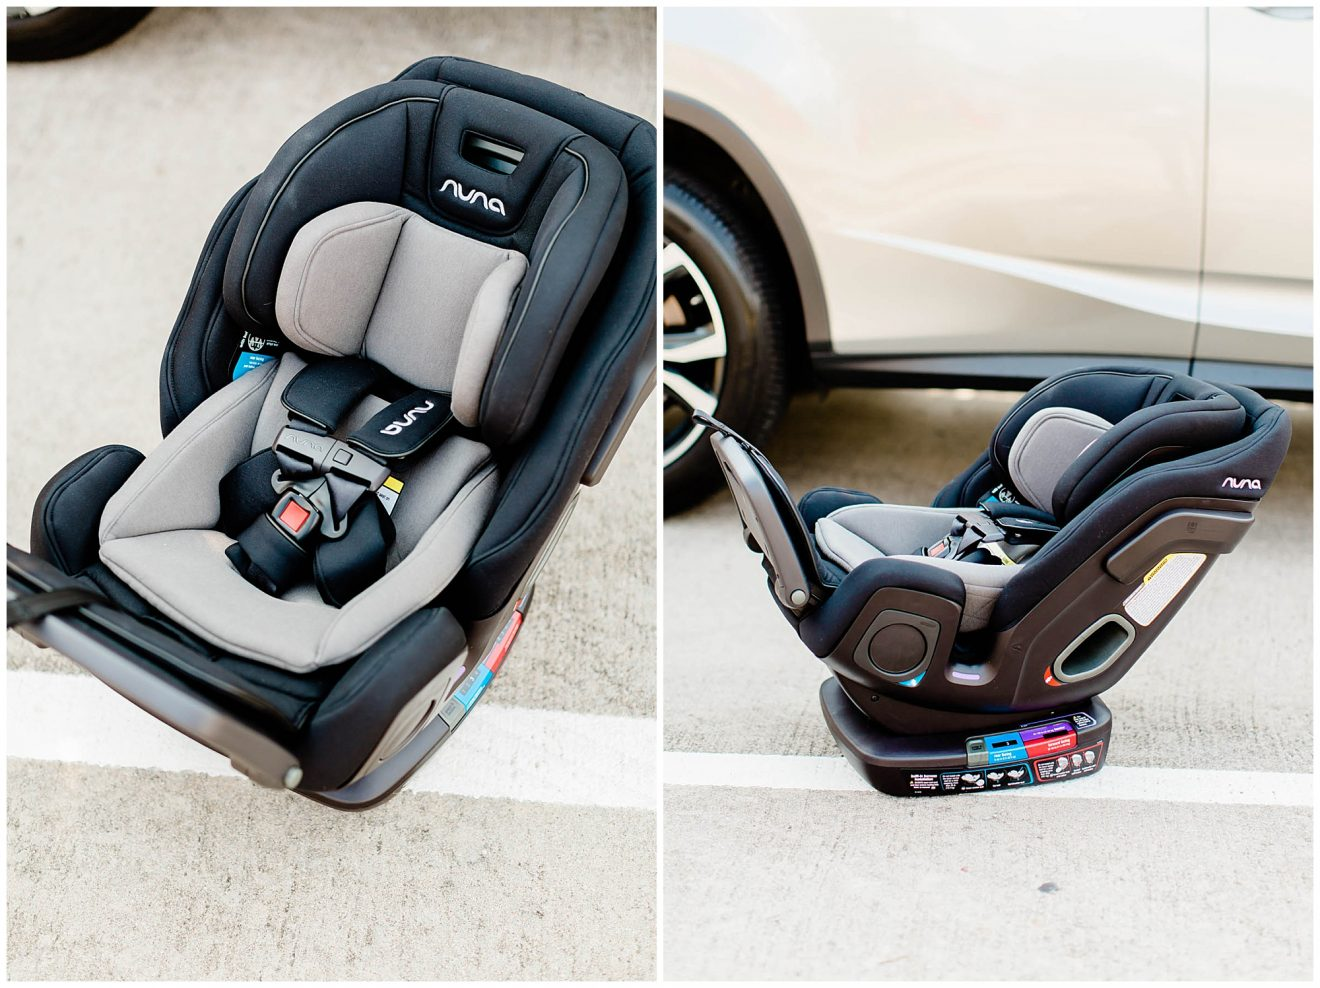 NUNA EXEC All-in-One Car Seat Review | Baby Chick